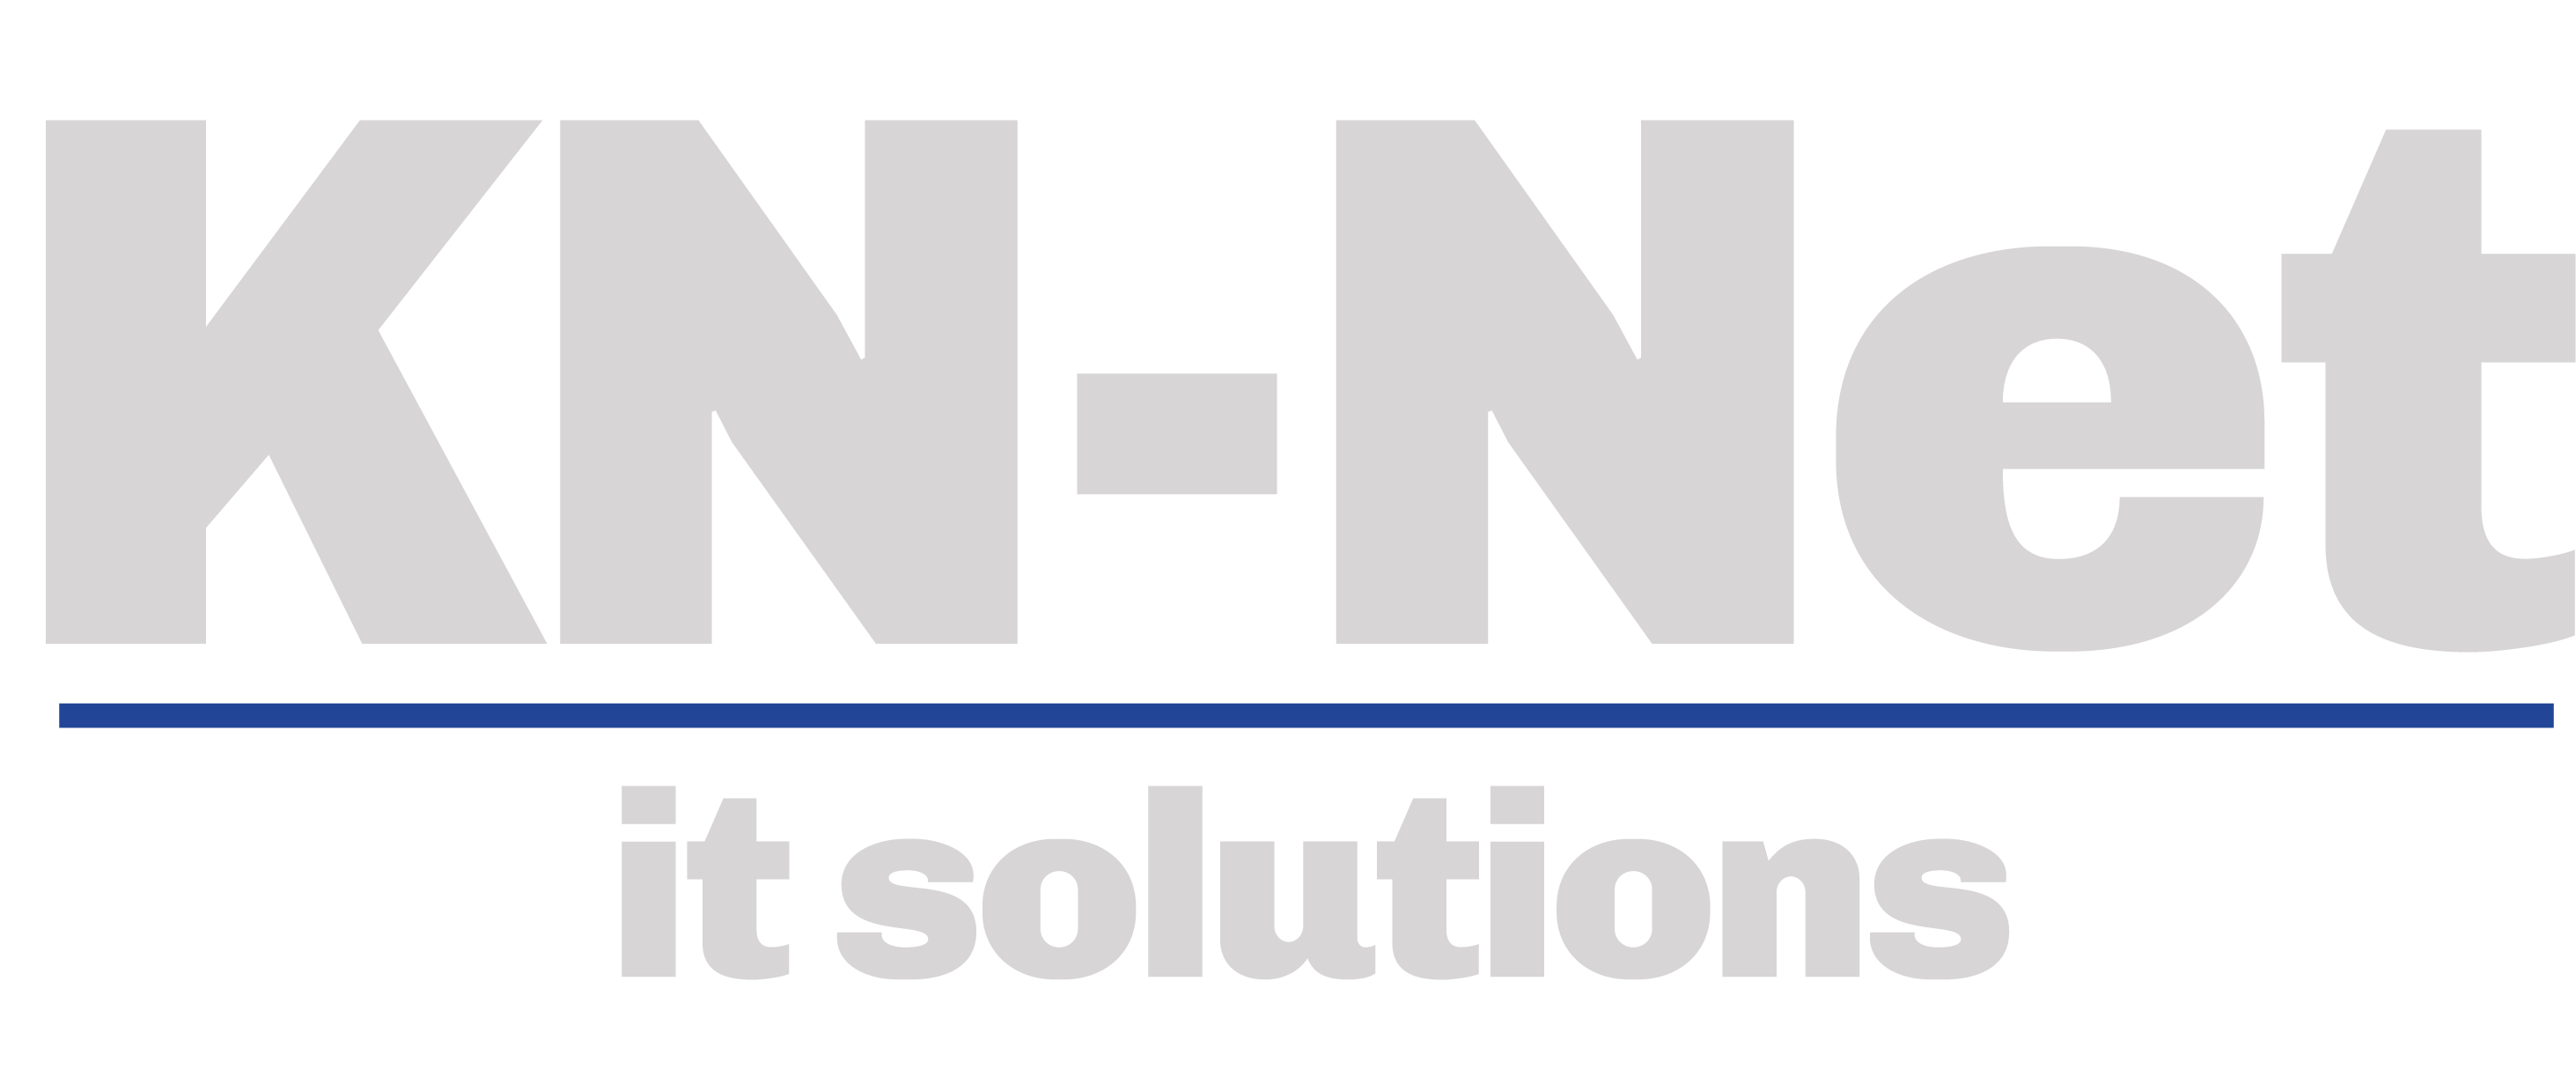 Kn-Net IT Solutions